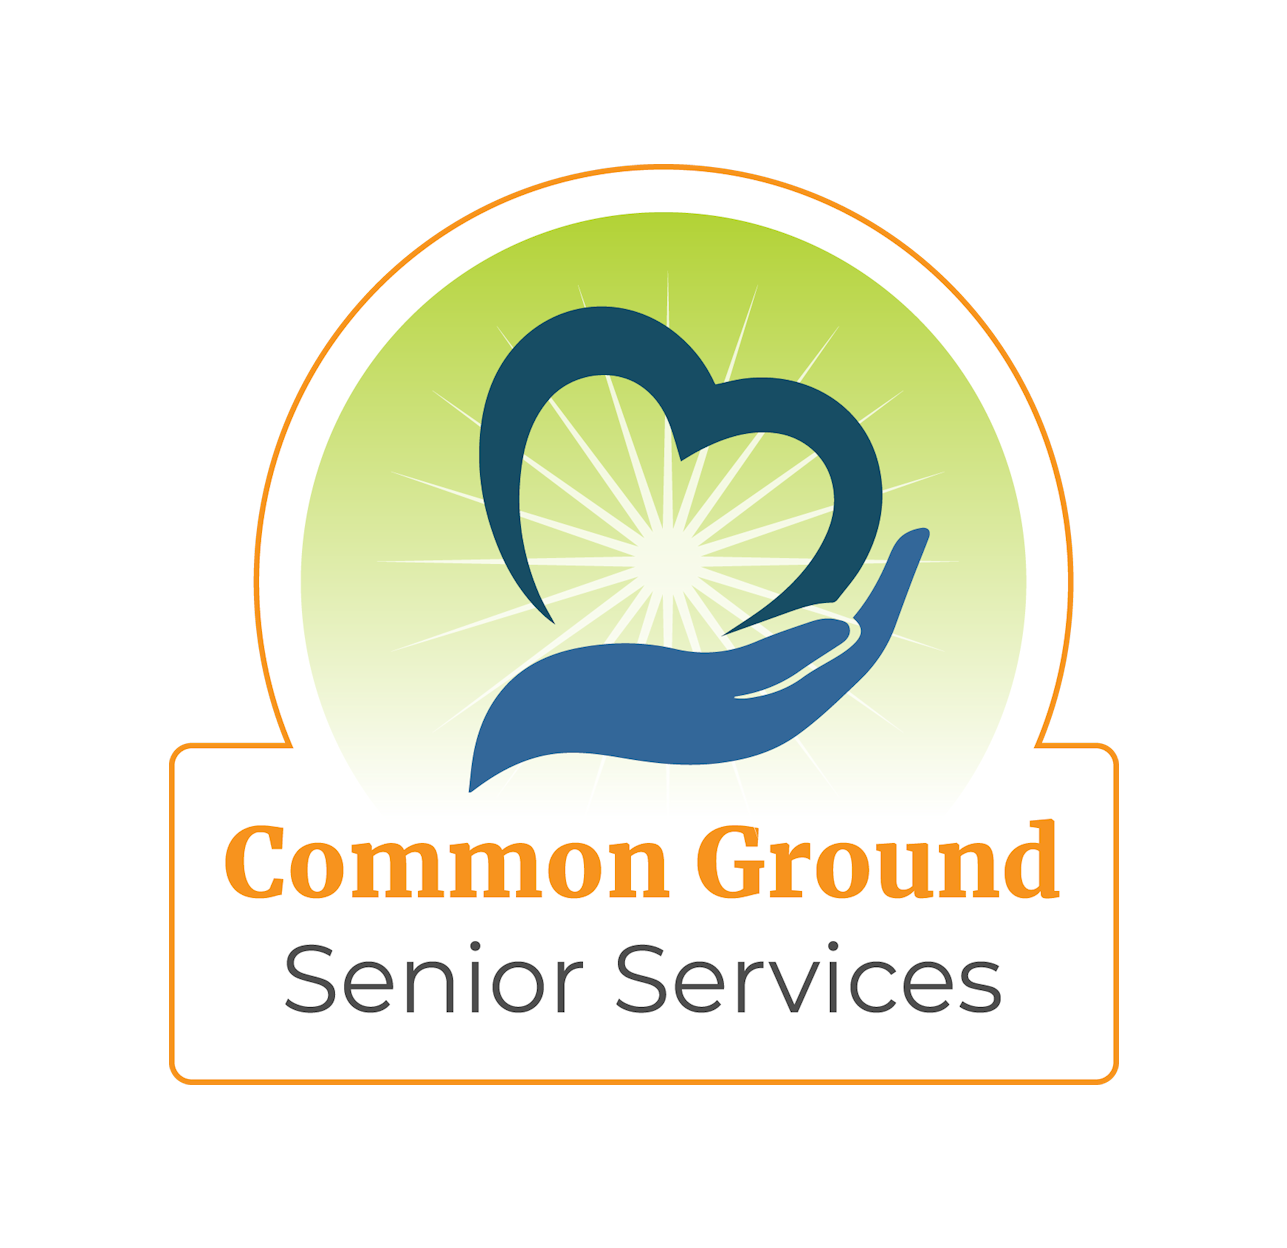 Common Ground Senior Services